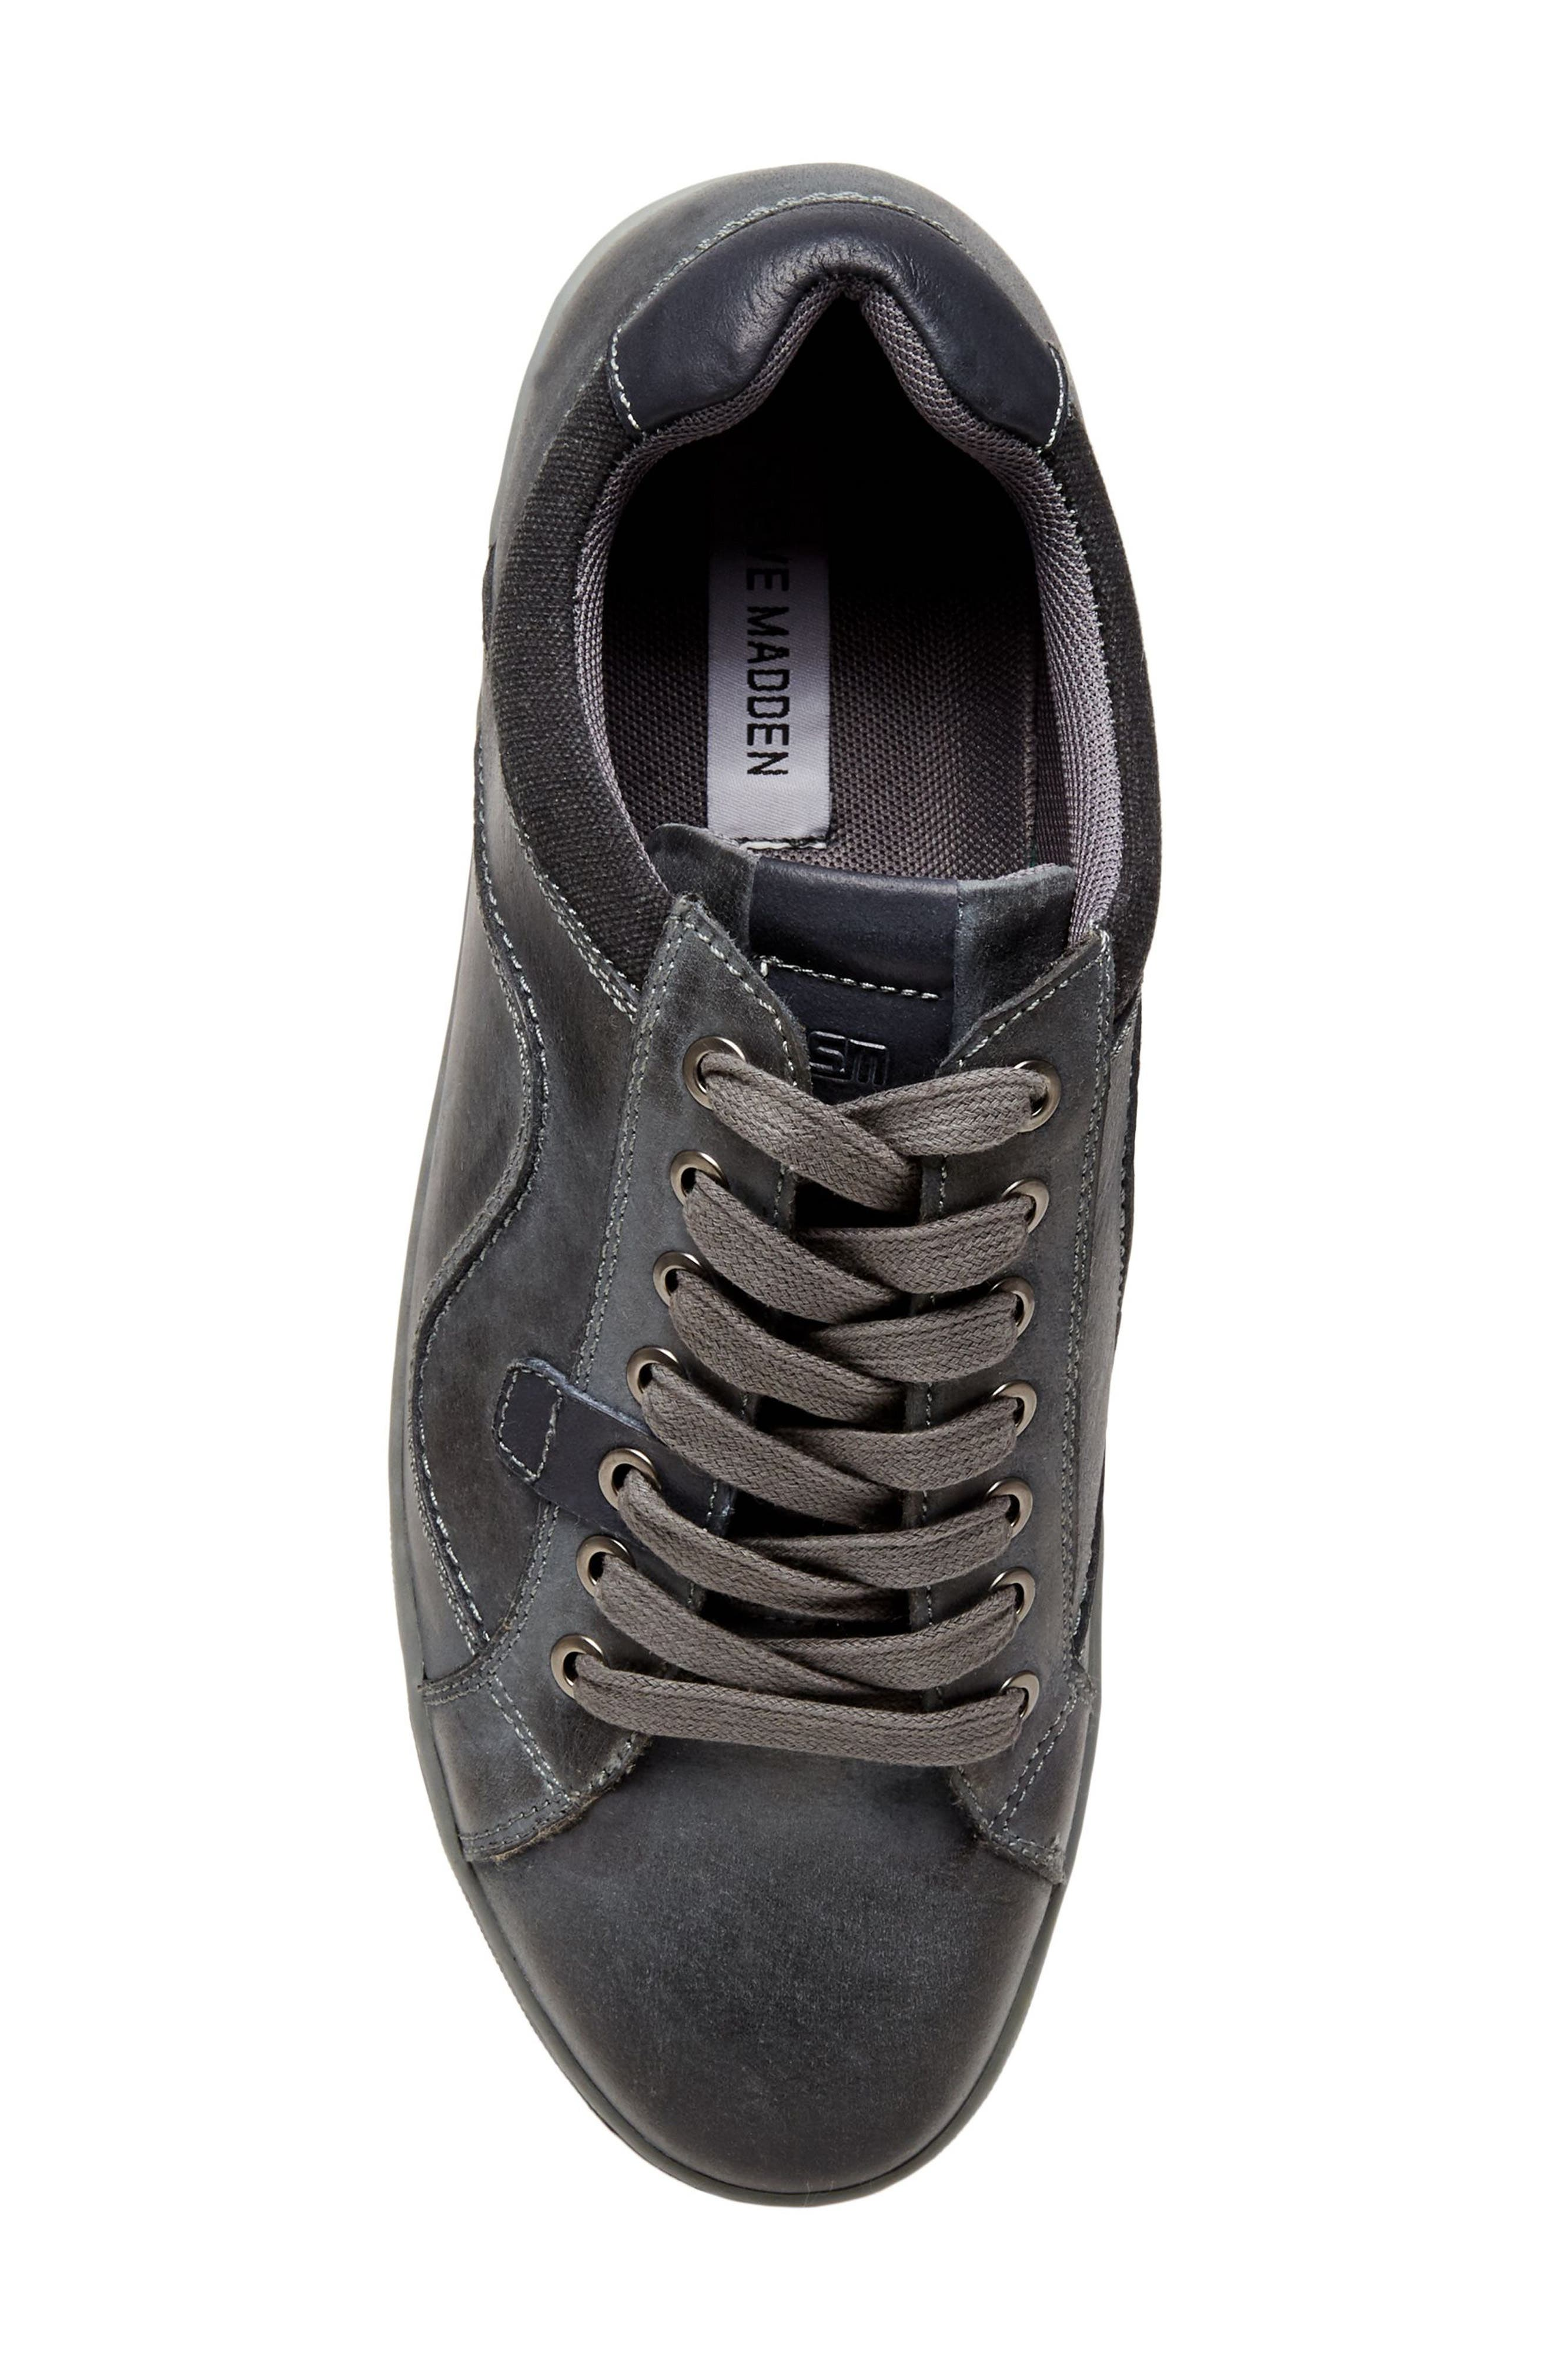 Chater Low Top Sneaker,                             Alternate thumbnail 9, color,